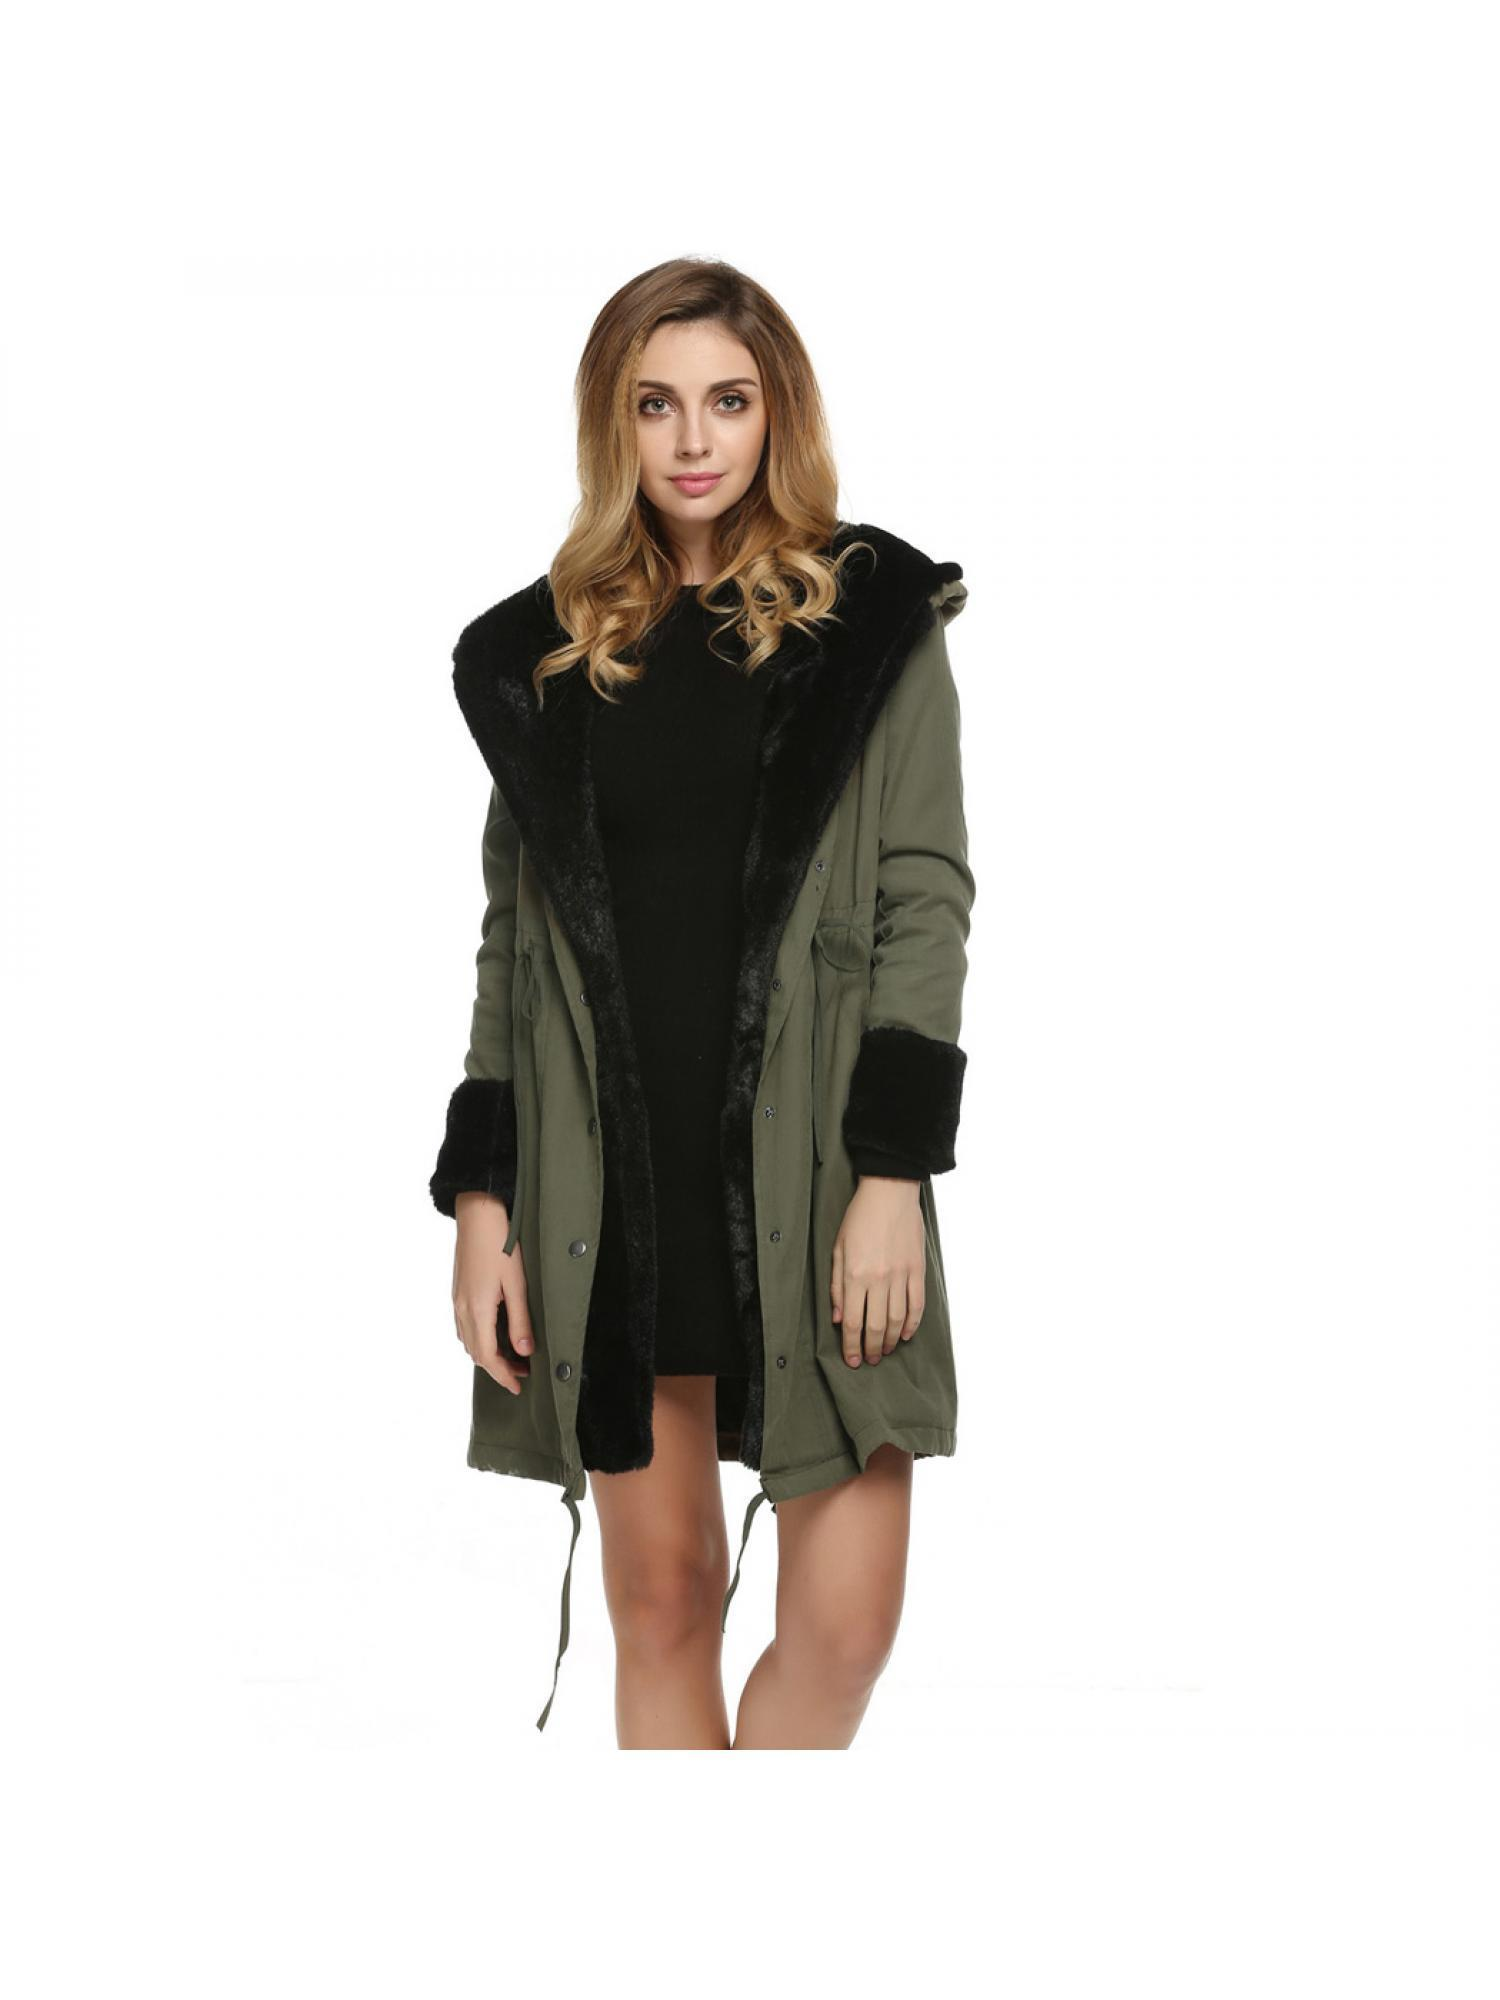 Clearance ! Women Overcoat  Lady Hooded Winter Warm Thick Faux Fur Coat Parka Long Outerwear Jacket CEAER